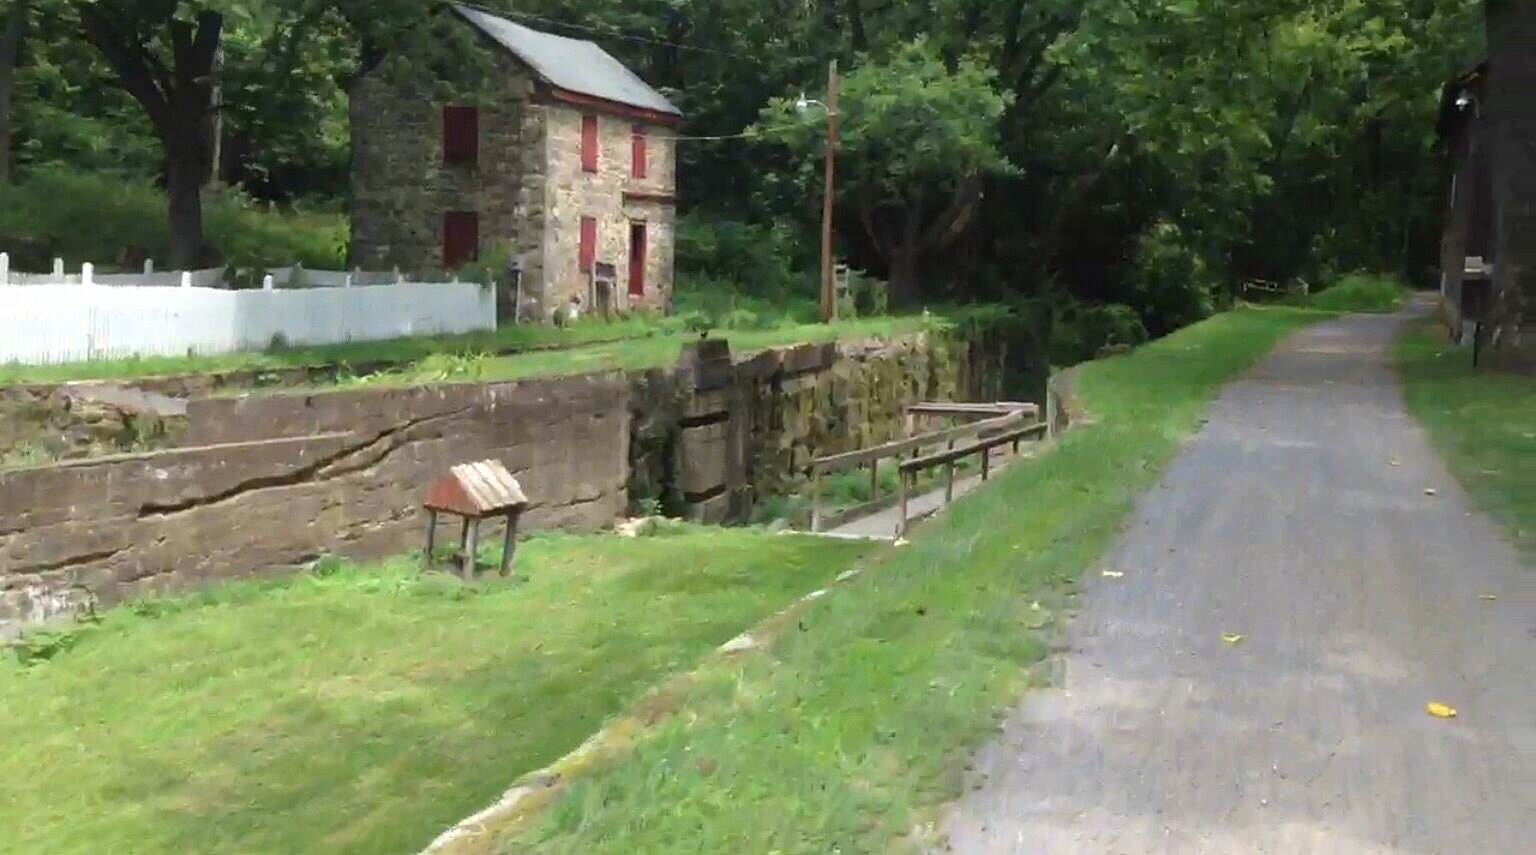 D & L Trail - Lehigh Canal South Freemansburg 7/13/16 This is about 7 miles from western start in Allentown. Smooth sailing through here. The trail is nice. 7/13/16. Very beautiful.